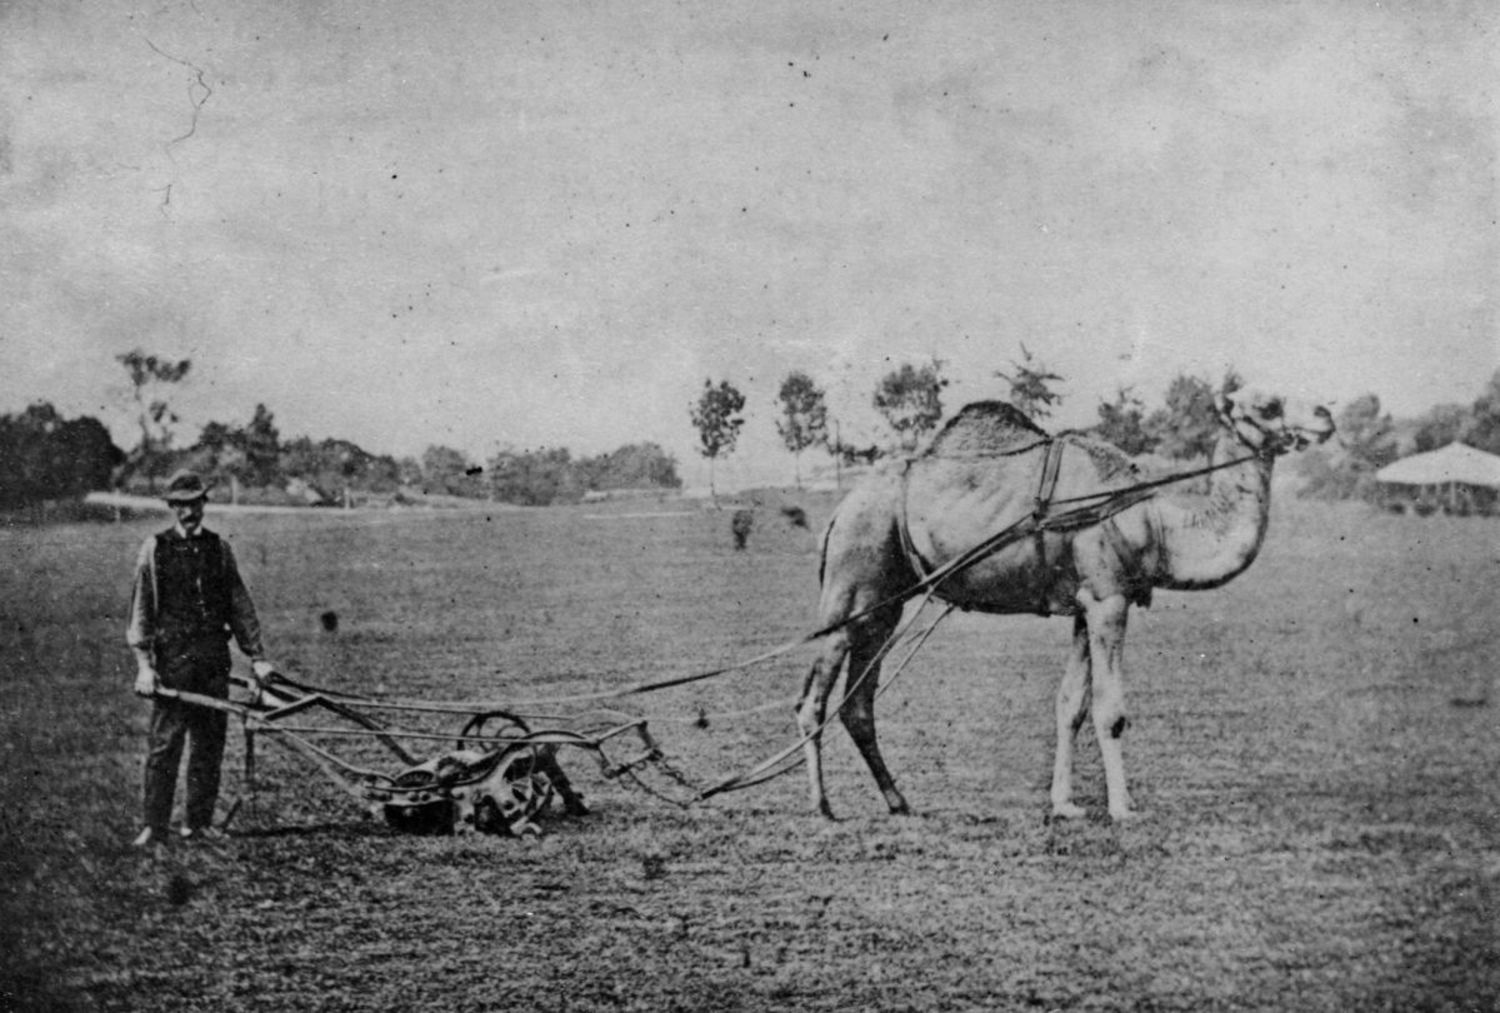 A camel hitched to a lawn mower, Sheep Meadow, Central Park, 1869.